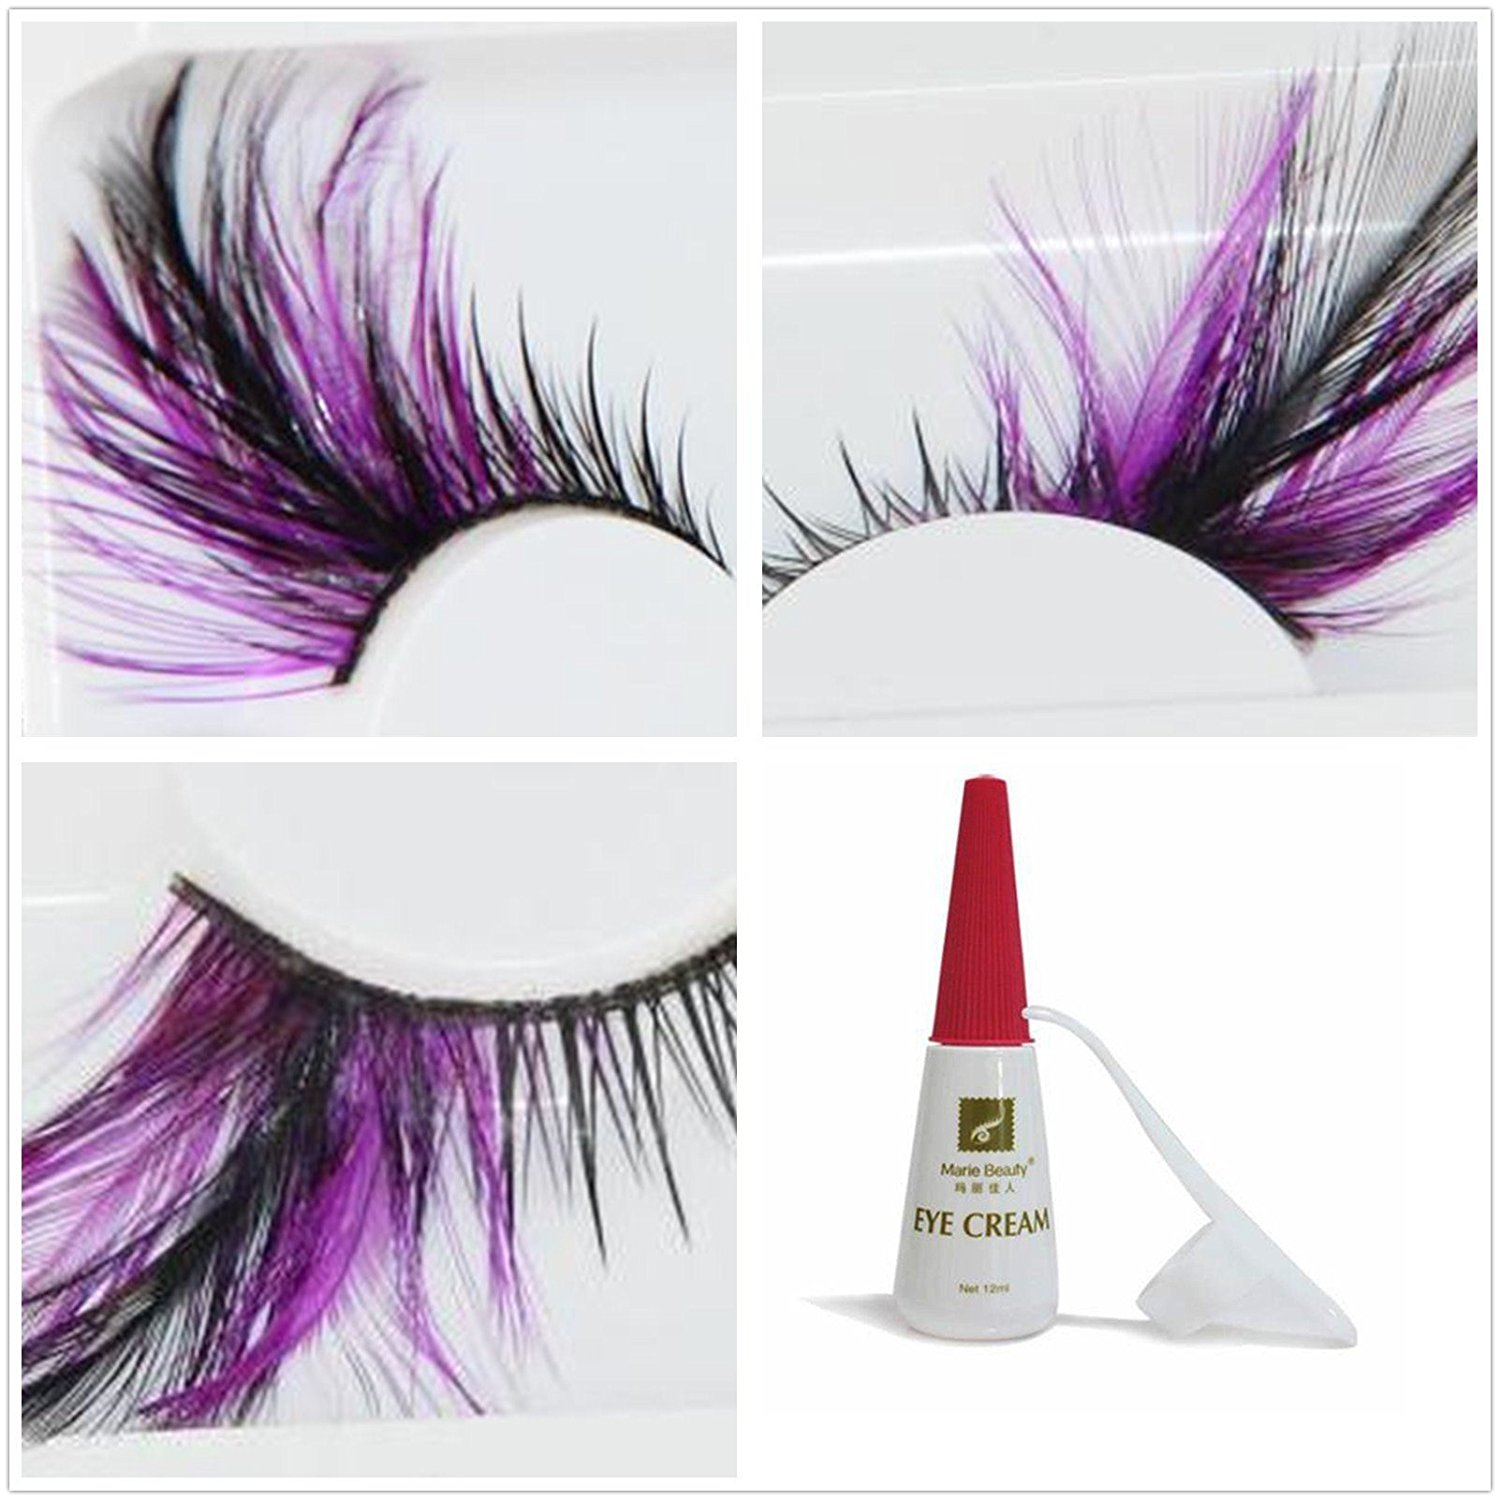 22baac6ec86 Get Quotations · Beauty II Girl Fancy Dress Dance Party Makeup Feather  False Eyelashes Eye Lashes Thick Extra Long